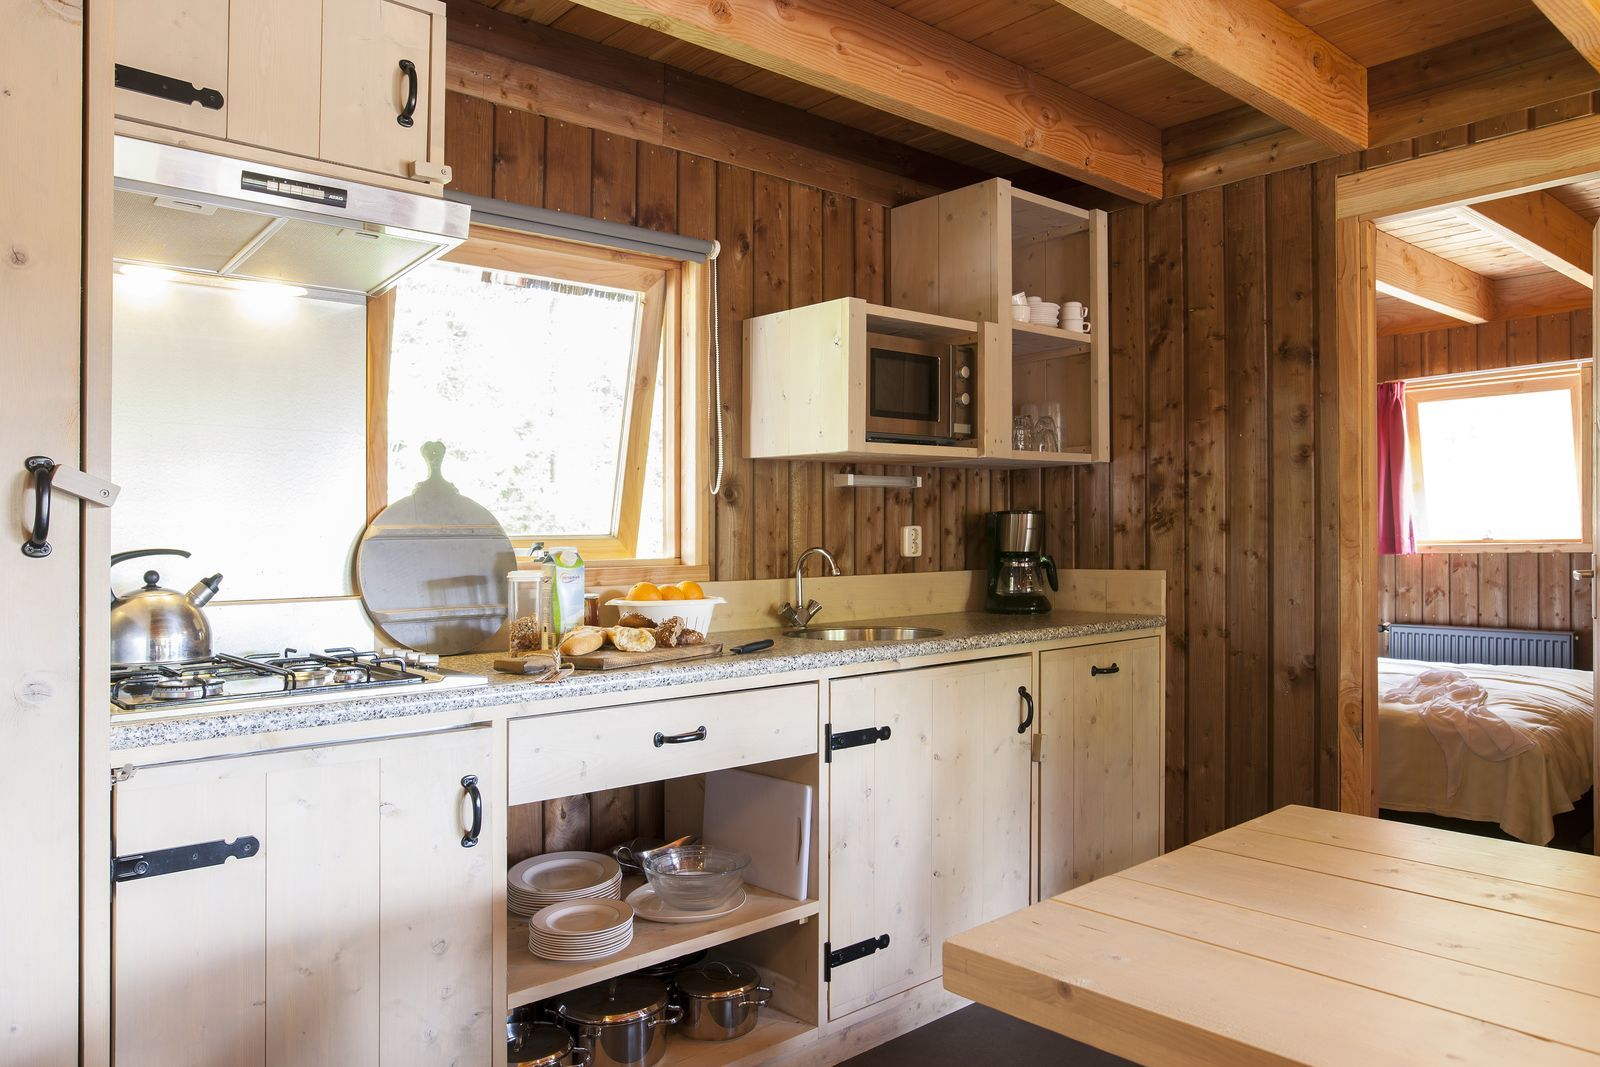 7-Persons Chalet with Rooftop terrace